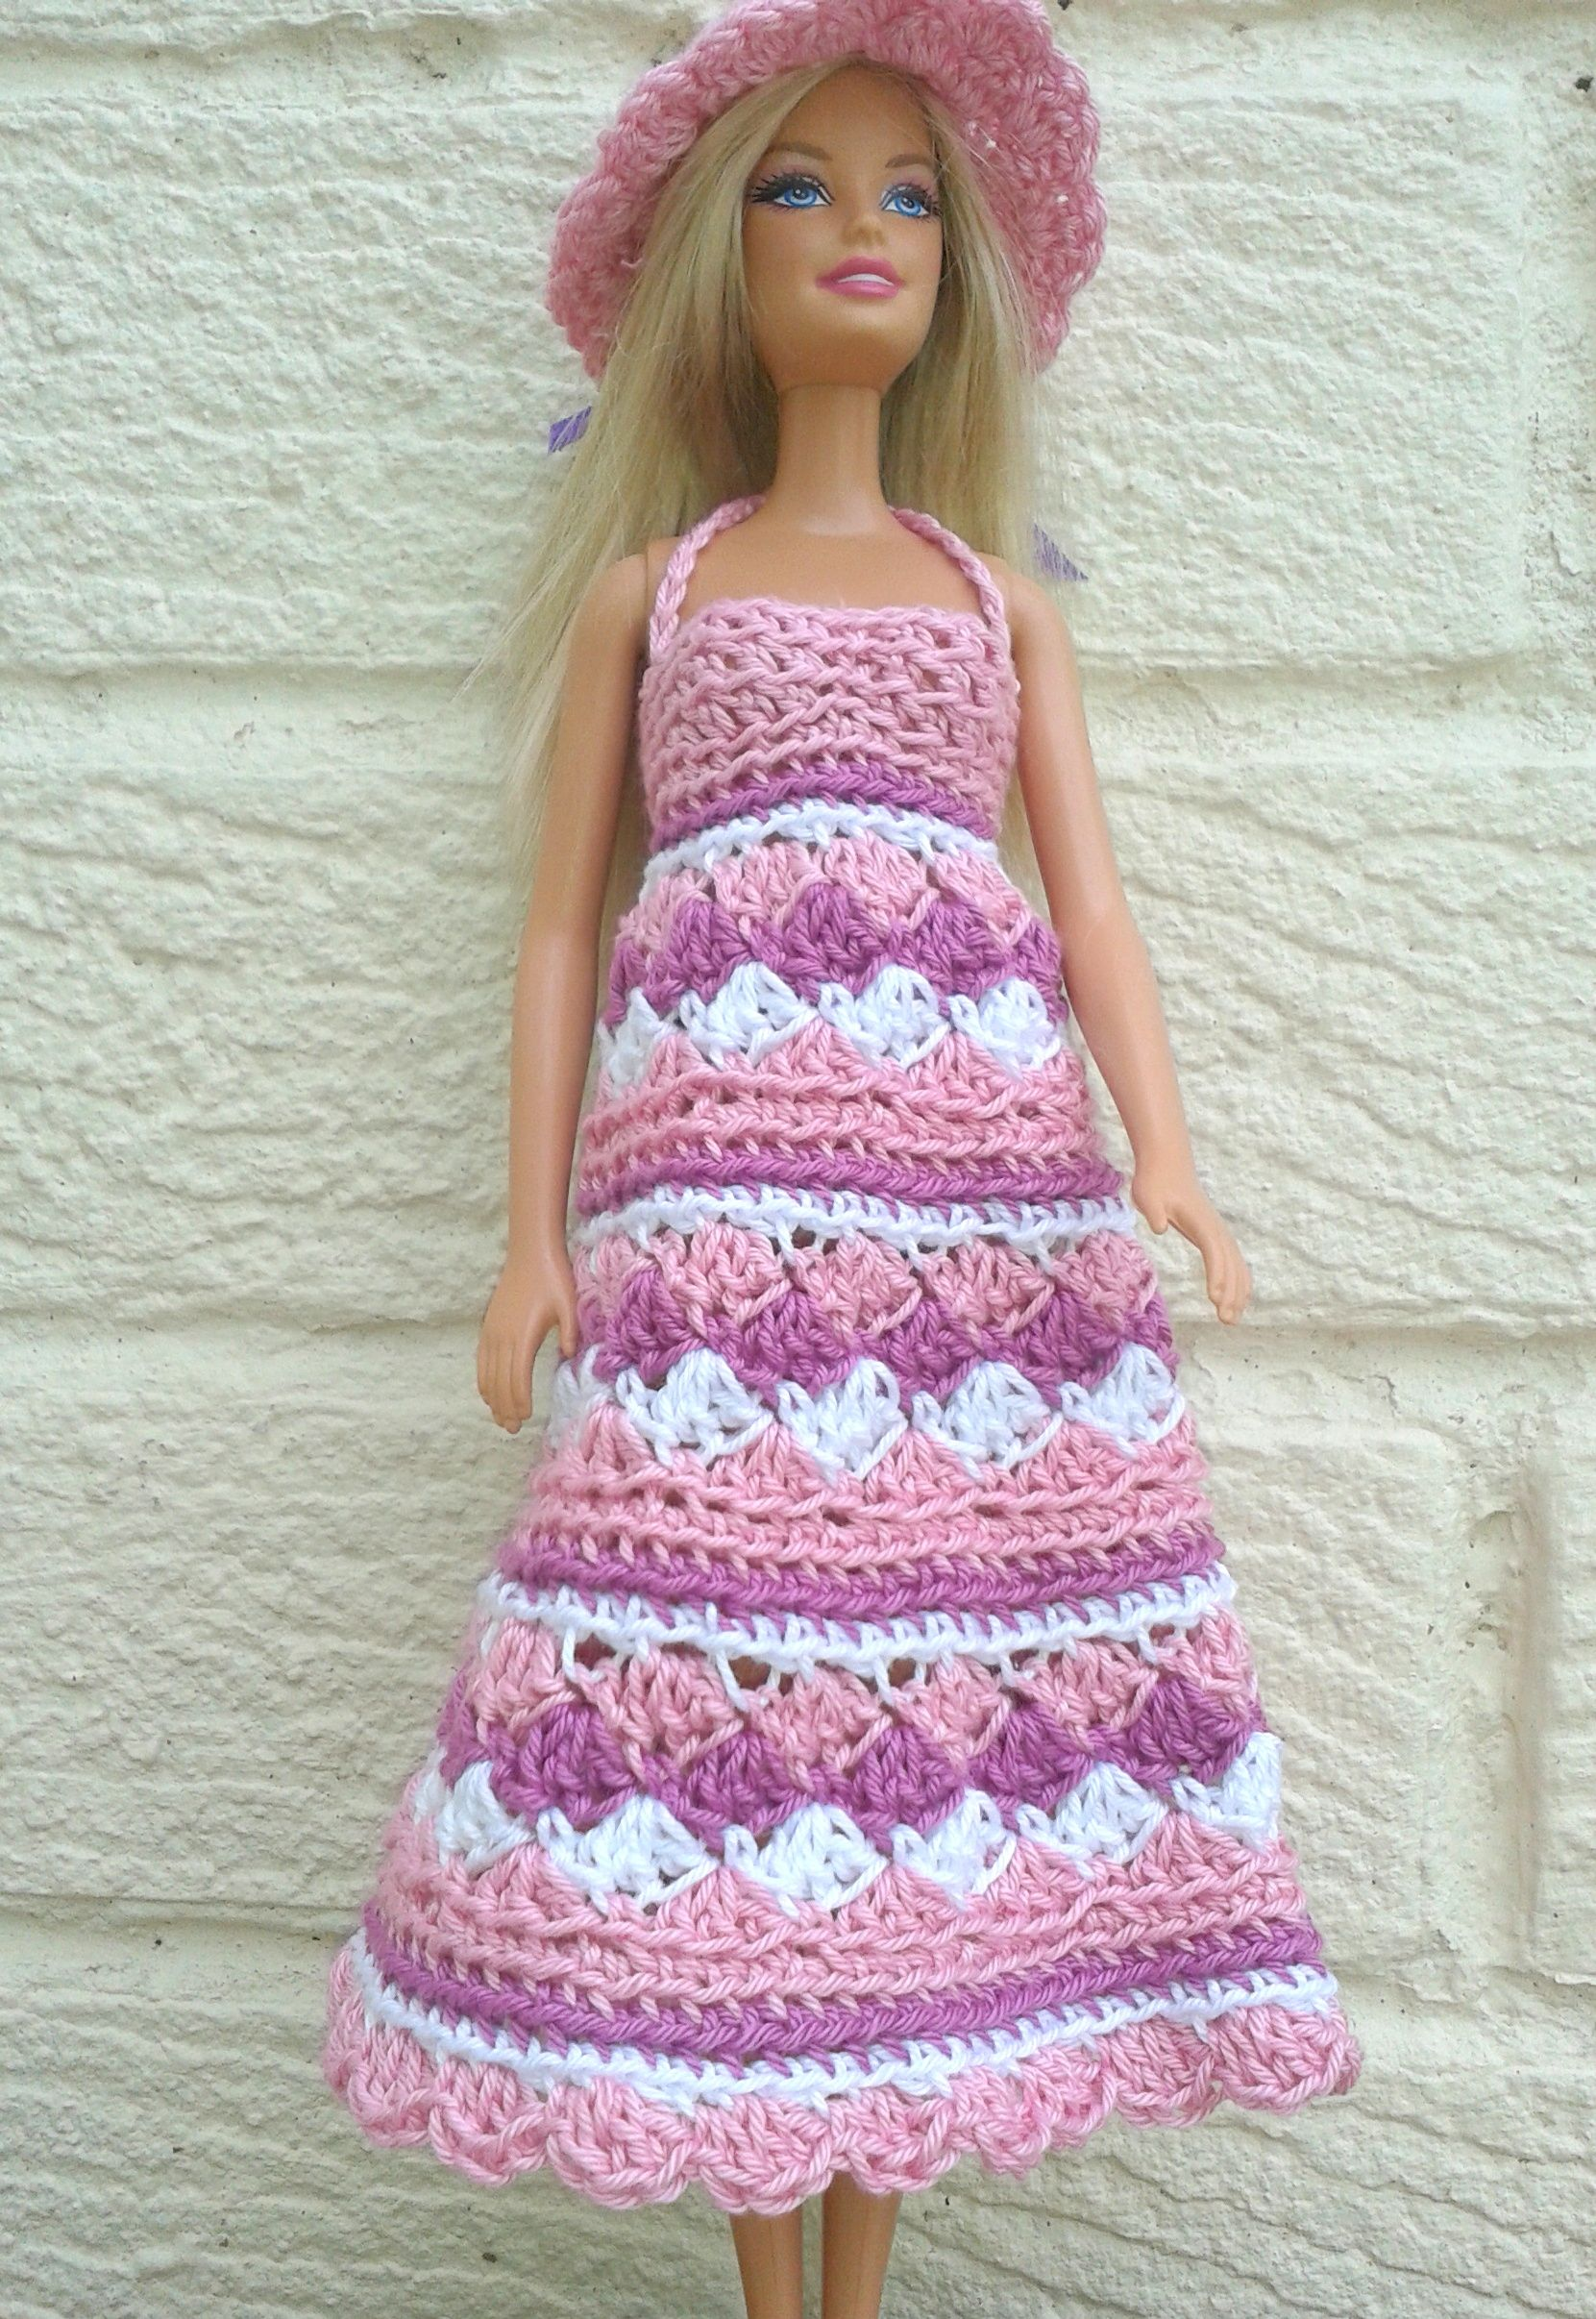 Another crochet sundress for barbie Free pattern on Ravelry | Diy ...